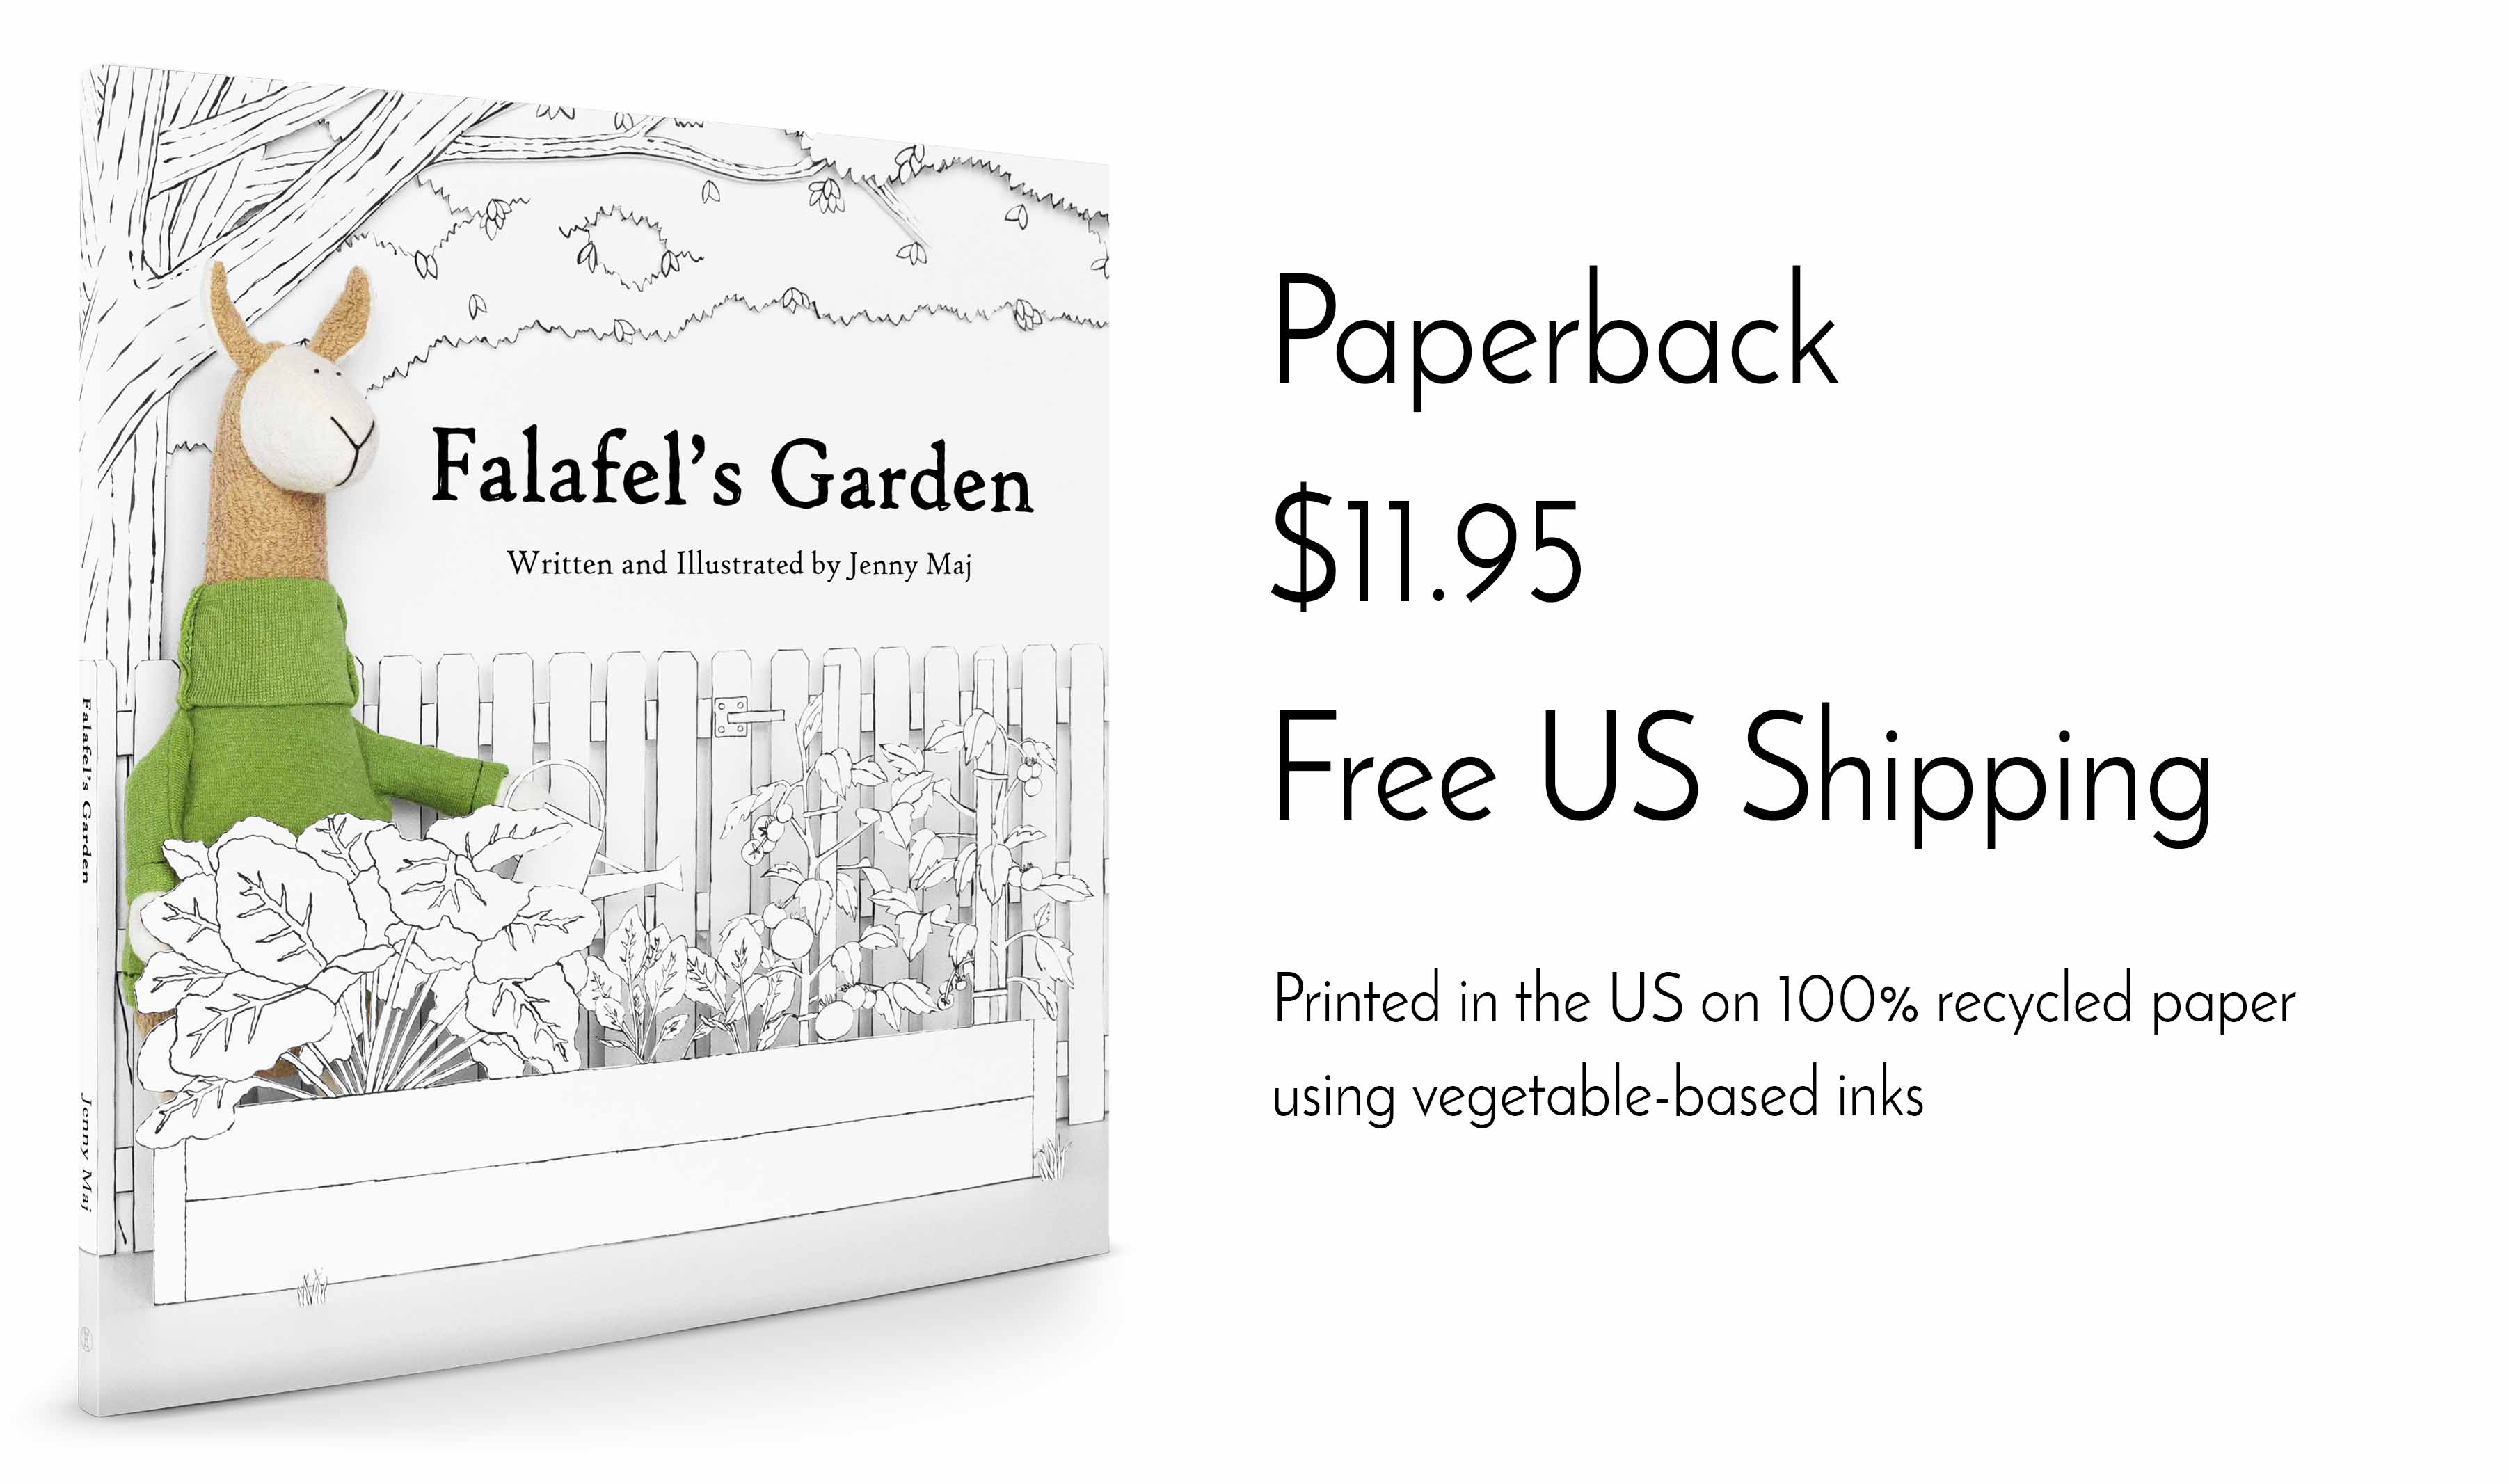 eco-friendly children's book Falafel's Garden Fluffmonger